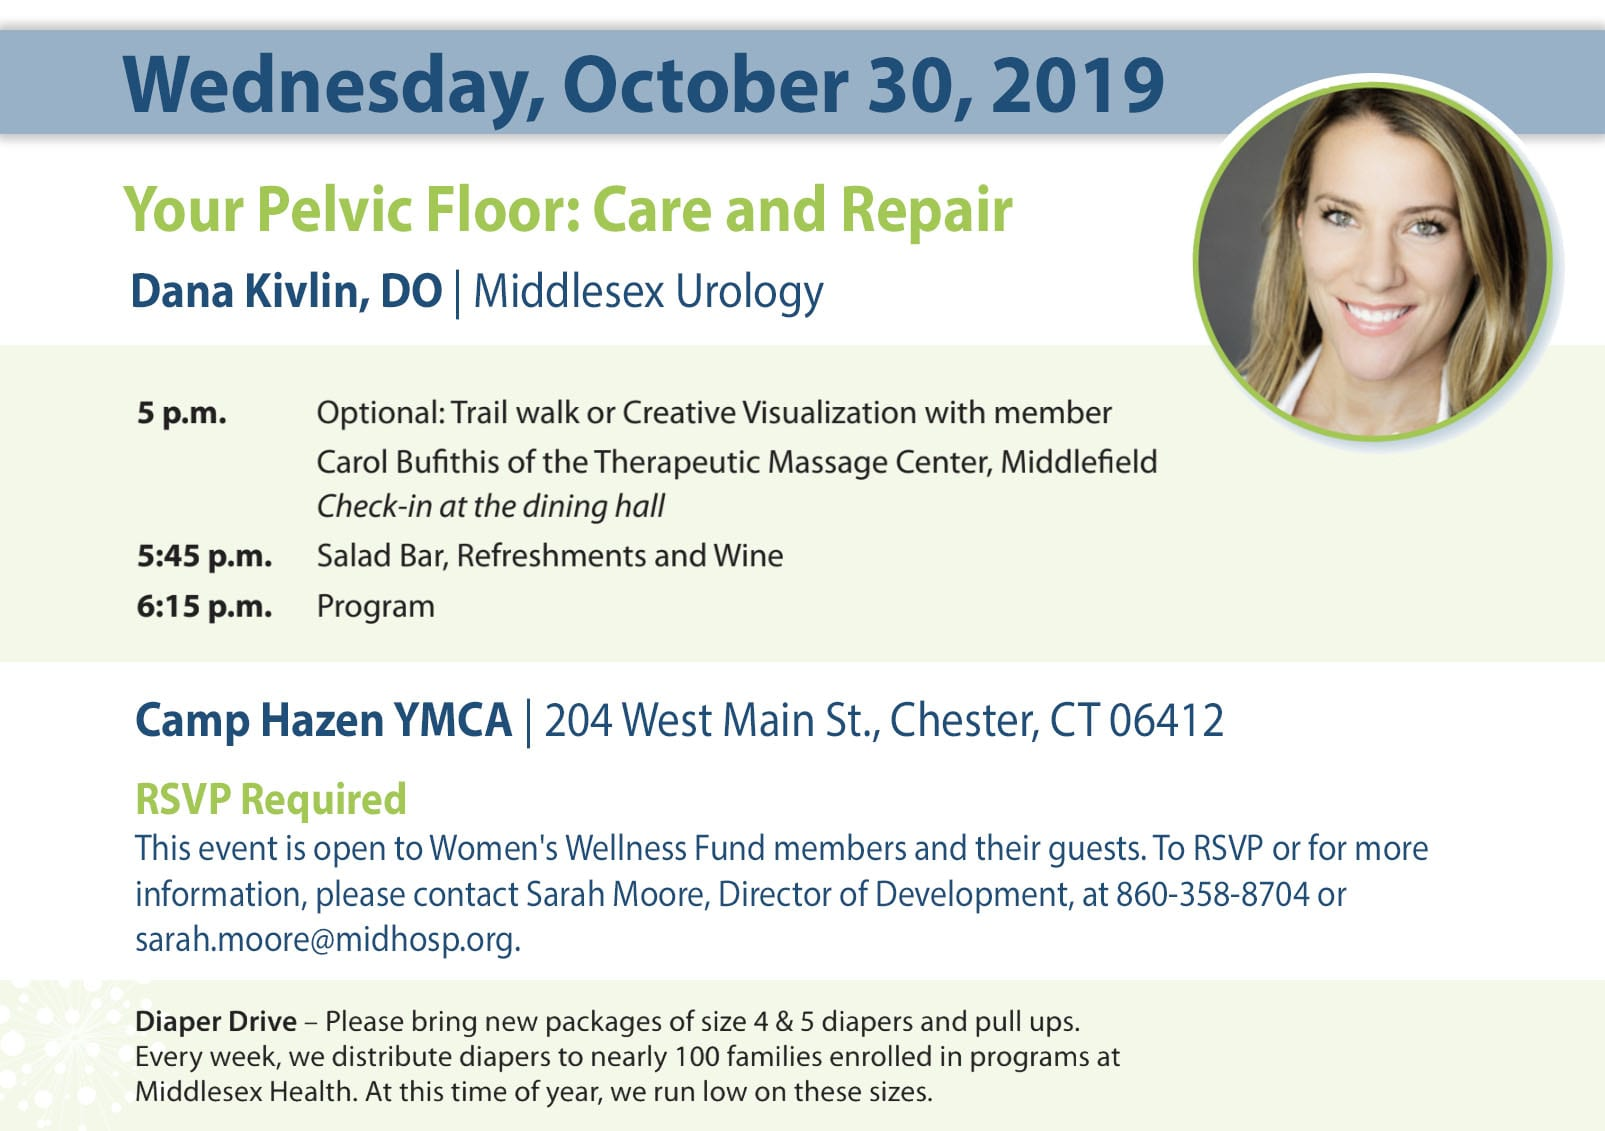 Details for October 2019 Women's Wellness Fund event.